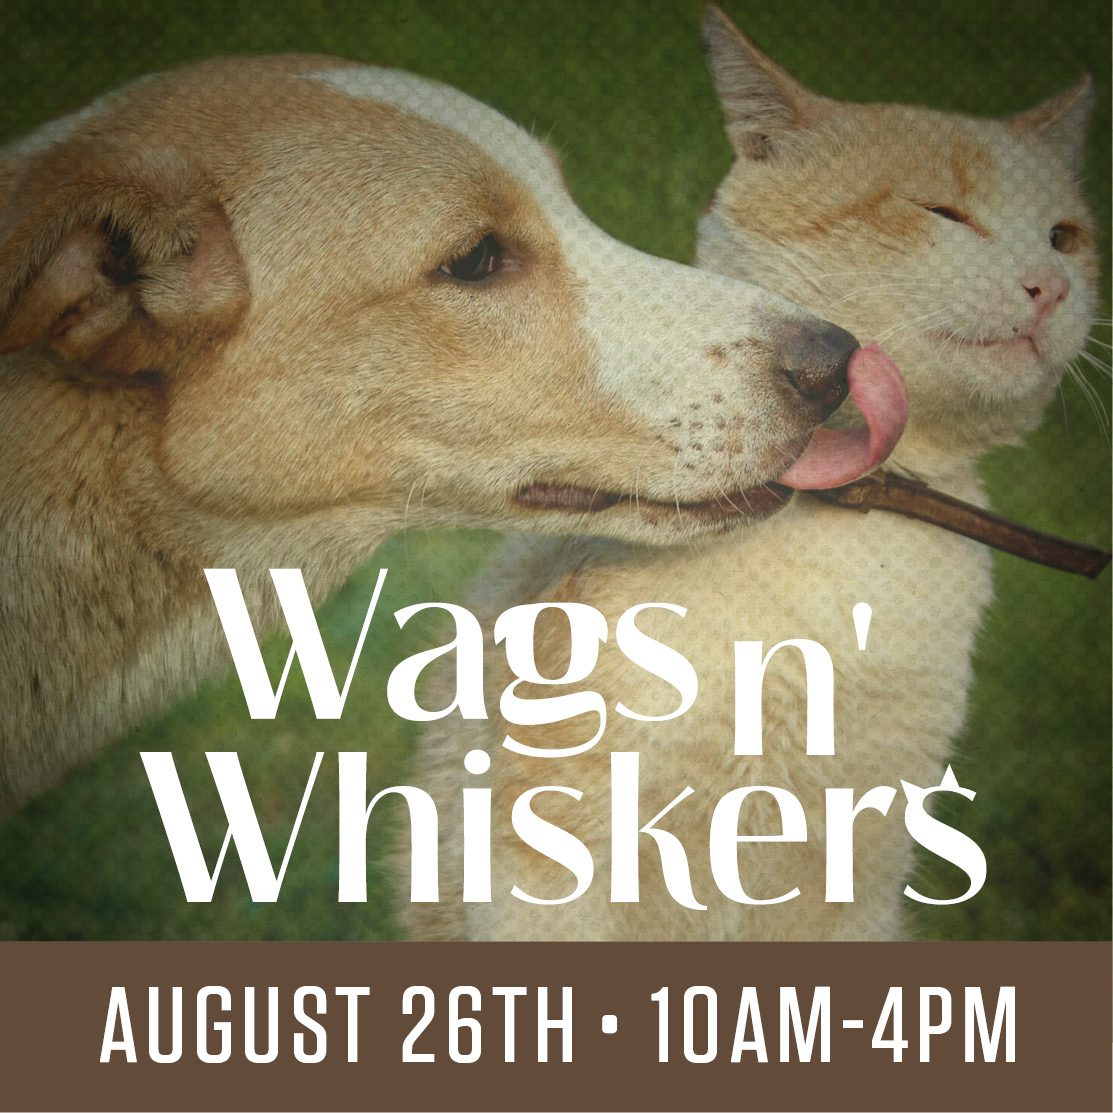 Wags N Whiskers 2017 flyer